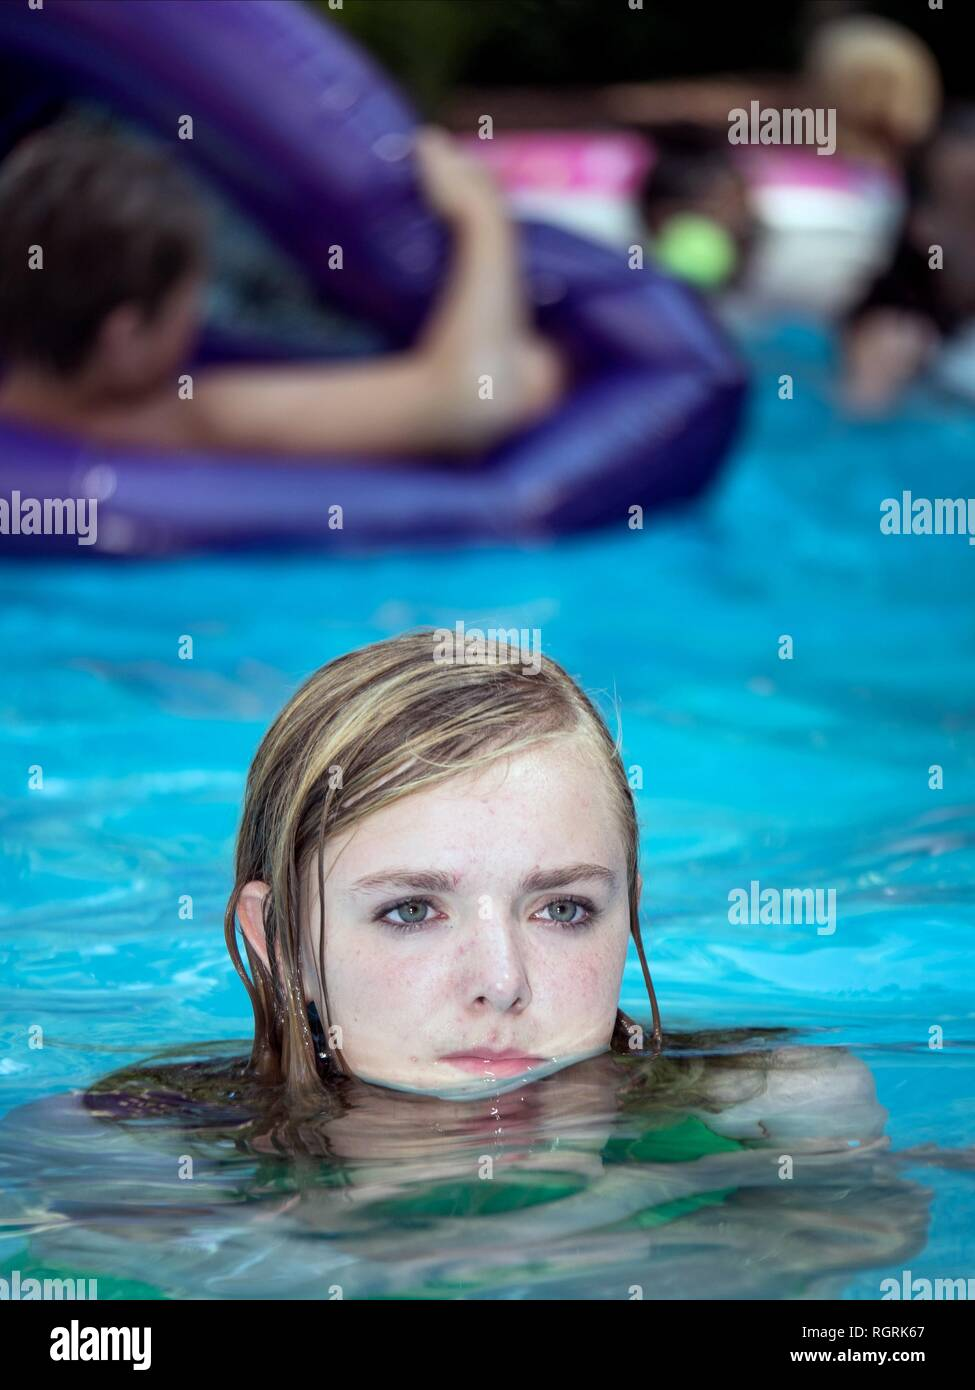 ELSIE FISHER EIGHTH GRADE (2018) Stock Photo